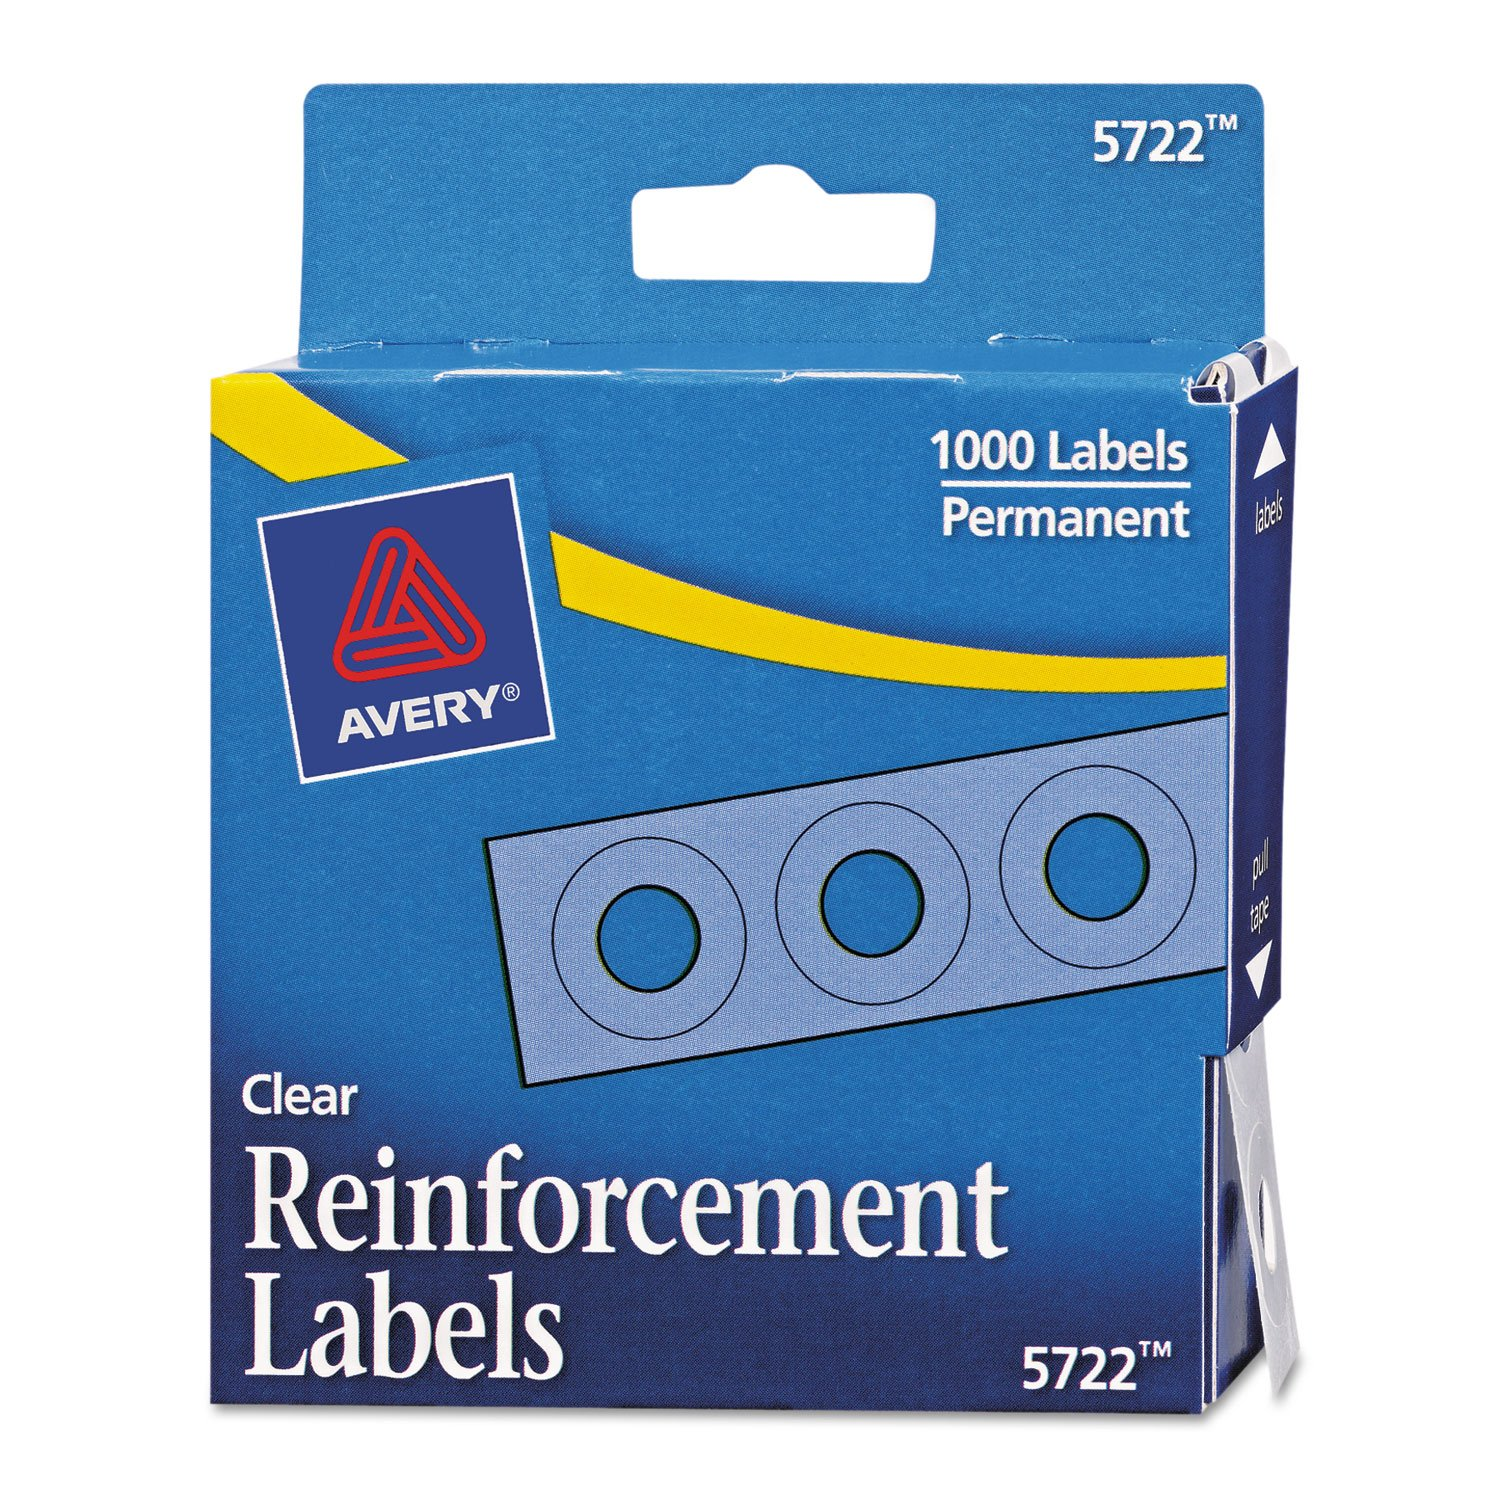 Avery 05722 Self-Adhesive Hole Reinforcement Labels, 1/4-Inch Round, Clear, 1000/PK by AVERY